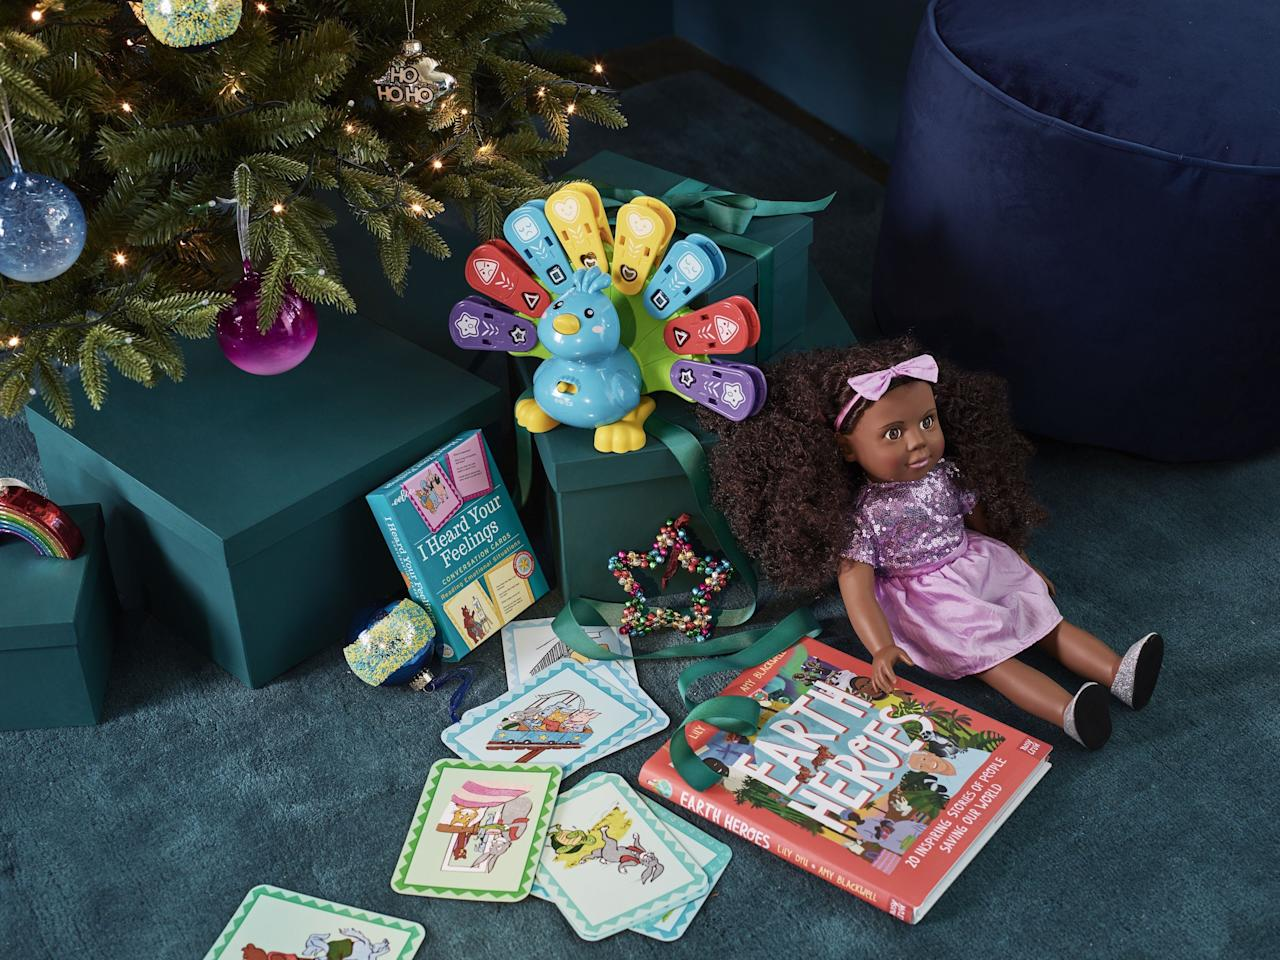 "<p><span class=""redactor-unlink"">Christmas</span> is still months away, but <span class=""redactor-unlink"">John Lewis</span> has already rounded-up the toys that kids will be hoping to find under the tree this year. Some of the key themes for this year include sustainability, climate change and educational games. </p><p>'This year is driven by the importance of learning through play and enhancing communication skills through interaction with toys as children have adapted to playing in smaller groups and with siblings,' the team at John Lewis says. </p><p>'We have already seen a 106% increase in sales of electronic toys this year and are introducing Botley 2.0, Brio Smart Tech Sound and VTech Feathers and Feelings Peacock in time for Christmas. All are expected to be among sought-after gifts this season as parents look for different ways to keep children entertained whilst also learning new skills and tools.'</p><p>Take a look at the top 10 toys below...</p>"